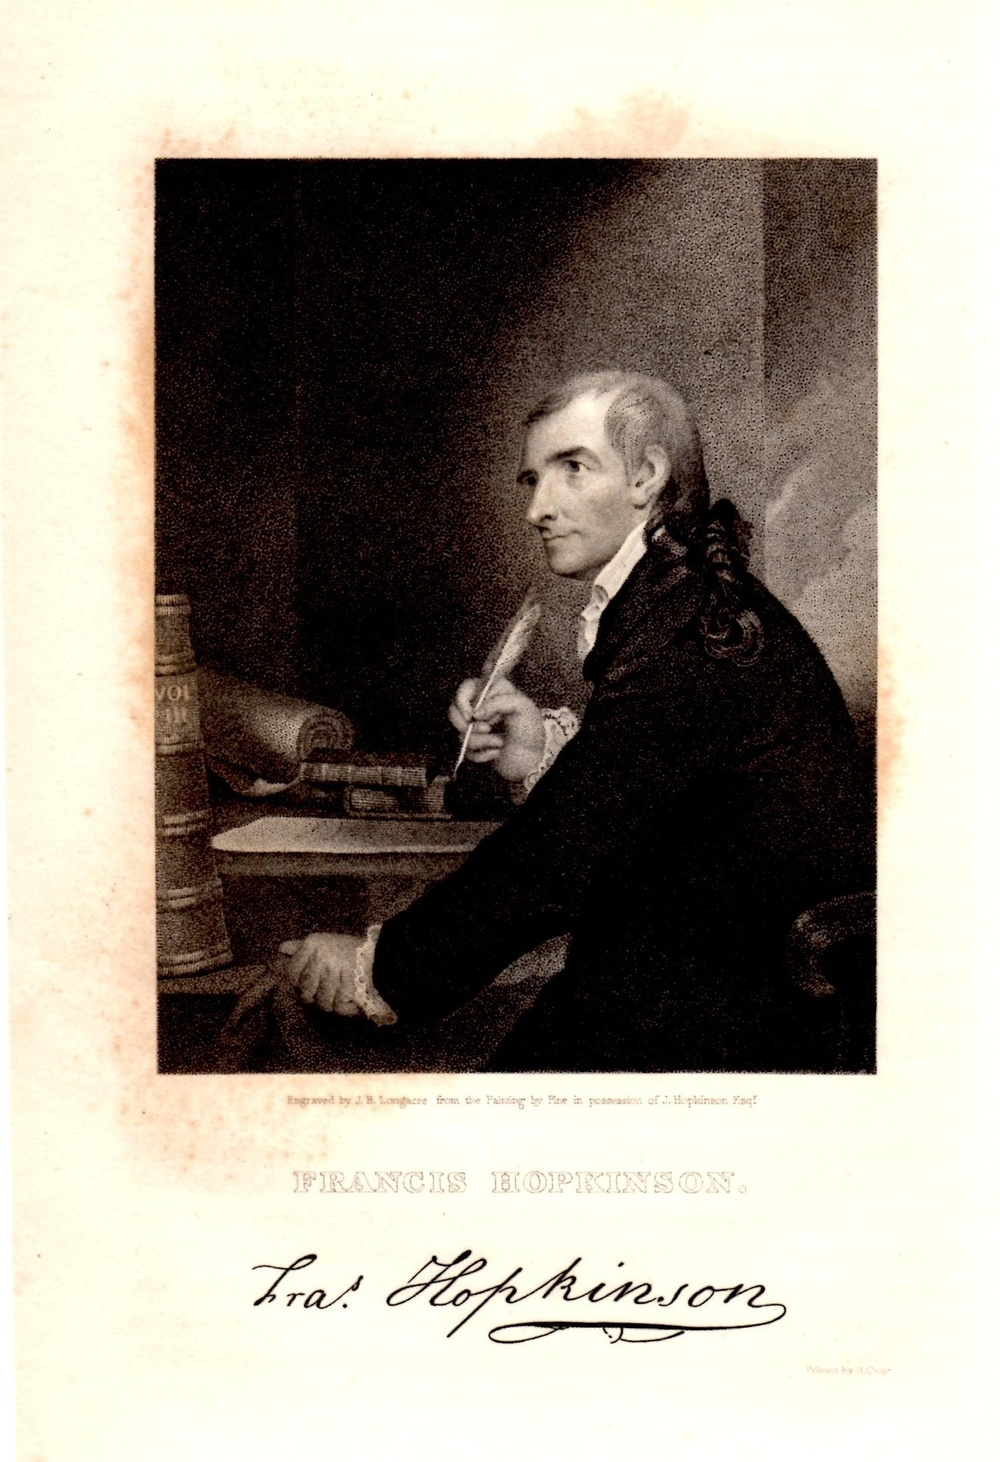 Hopkinson engraving portrait